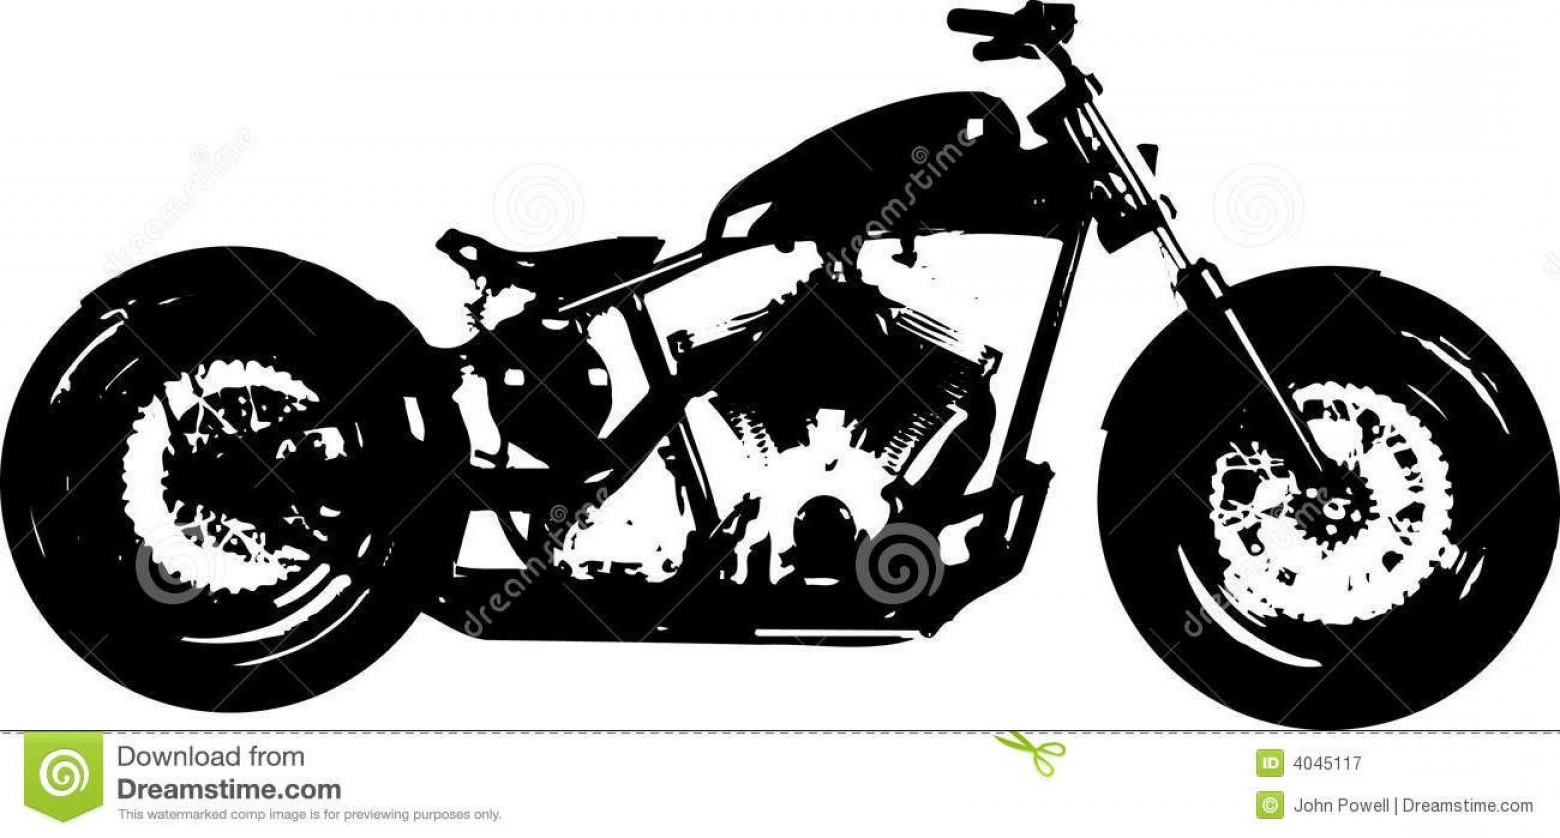 Harley-Davidson Flame Vector Silhouette: Best Hd Harley Tank Art Vector Photos